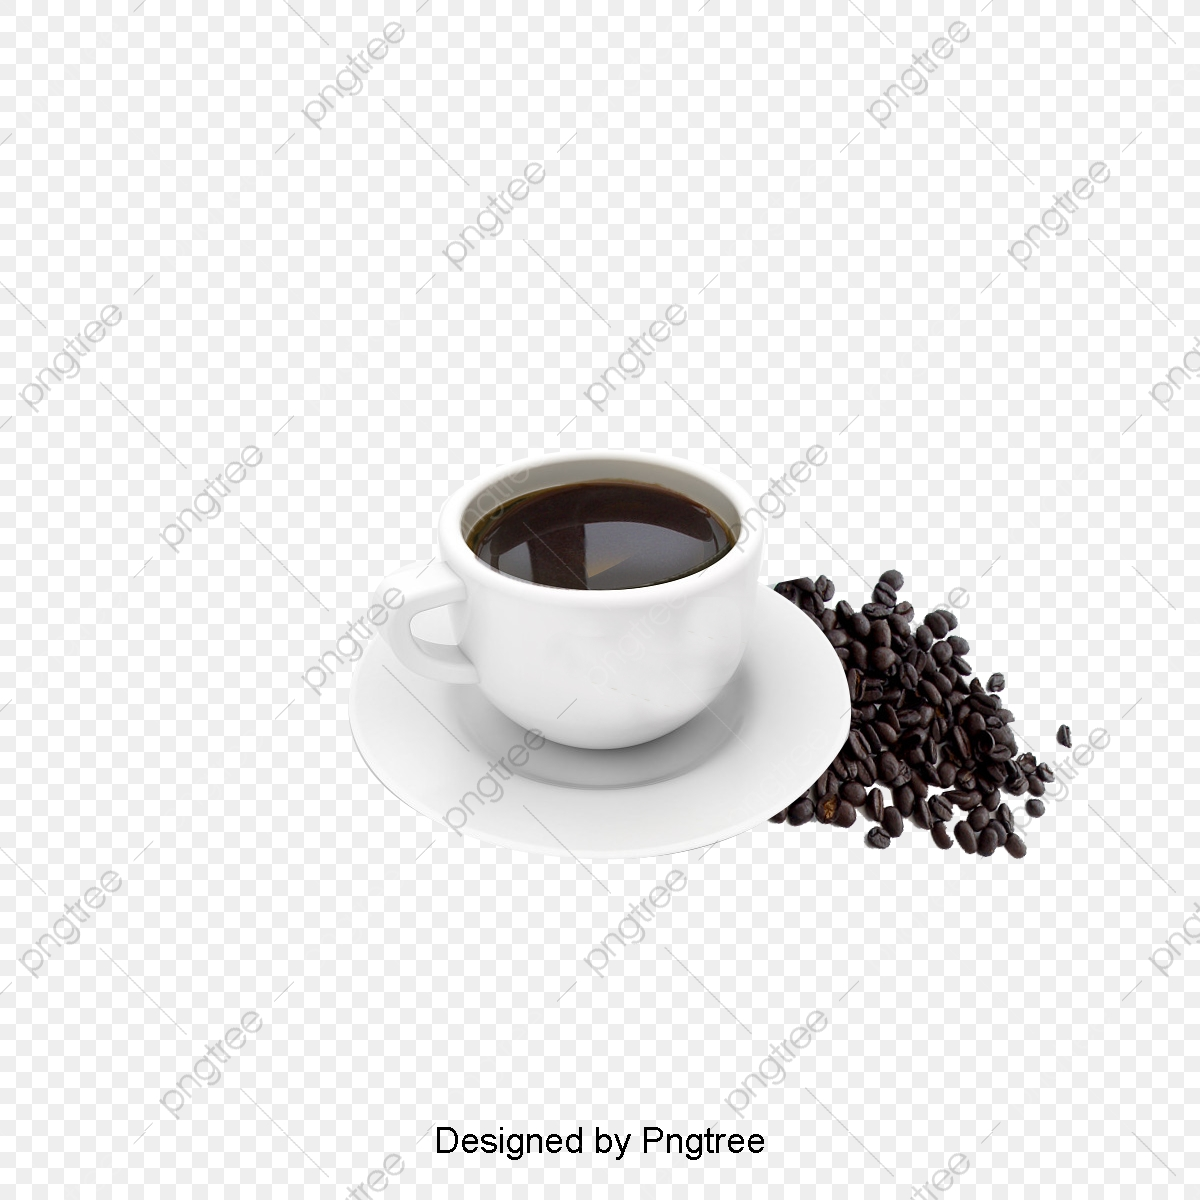 Cup Of Coffee Beans, Cup Clipart, Coffee Beans, Mug PNG